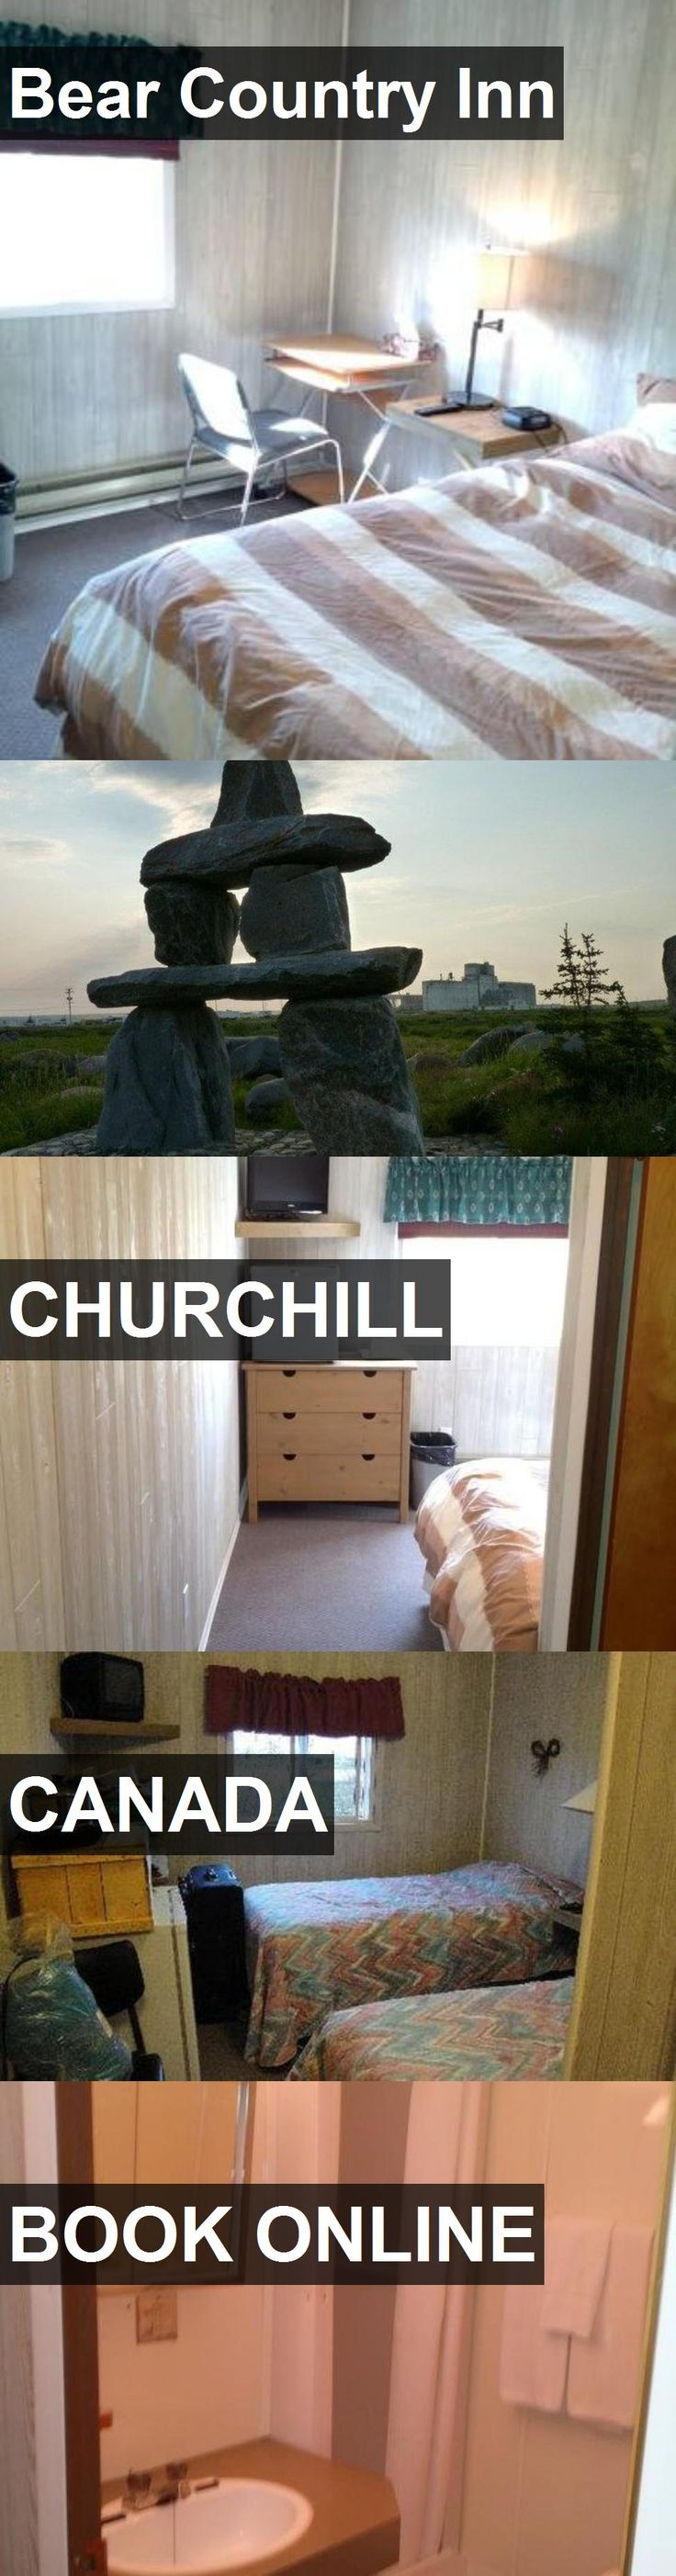 Hotel Bear Country Inn in Churchill, Canada. For more information, photos, reviews and best prices please follow the link. #Canada #Churchill #travel #vacation #hotel